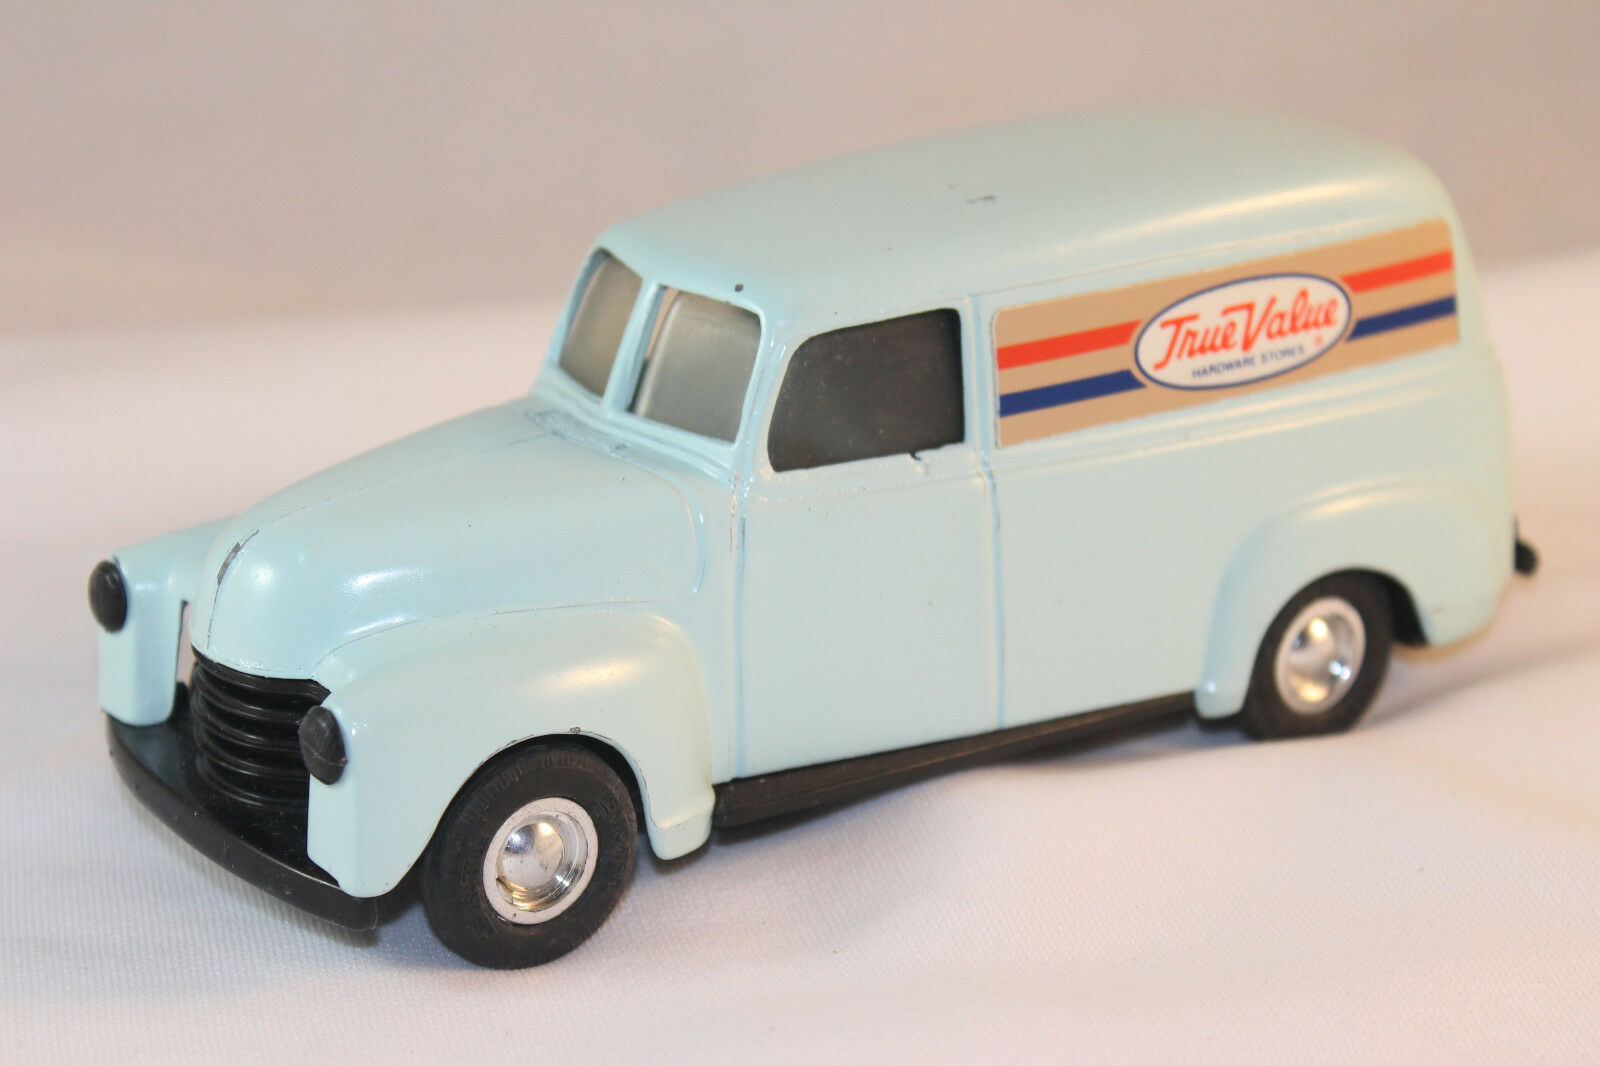 Ertl Tru-Value 1948 Chevrolet Test Shot Van